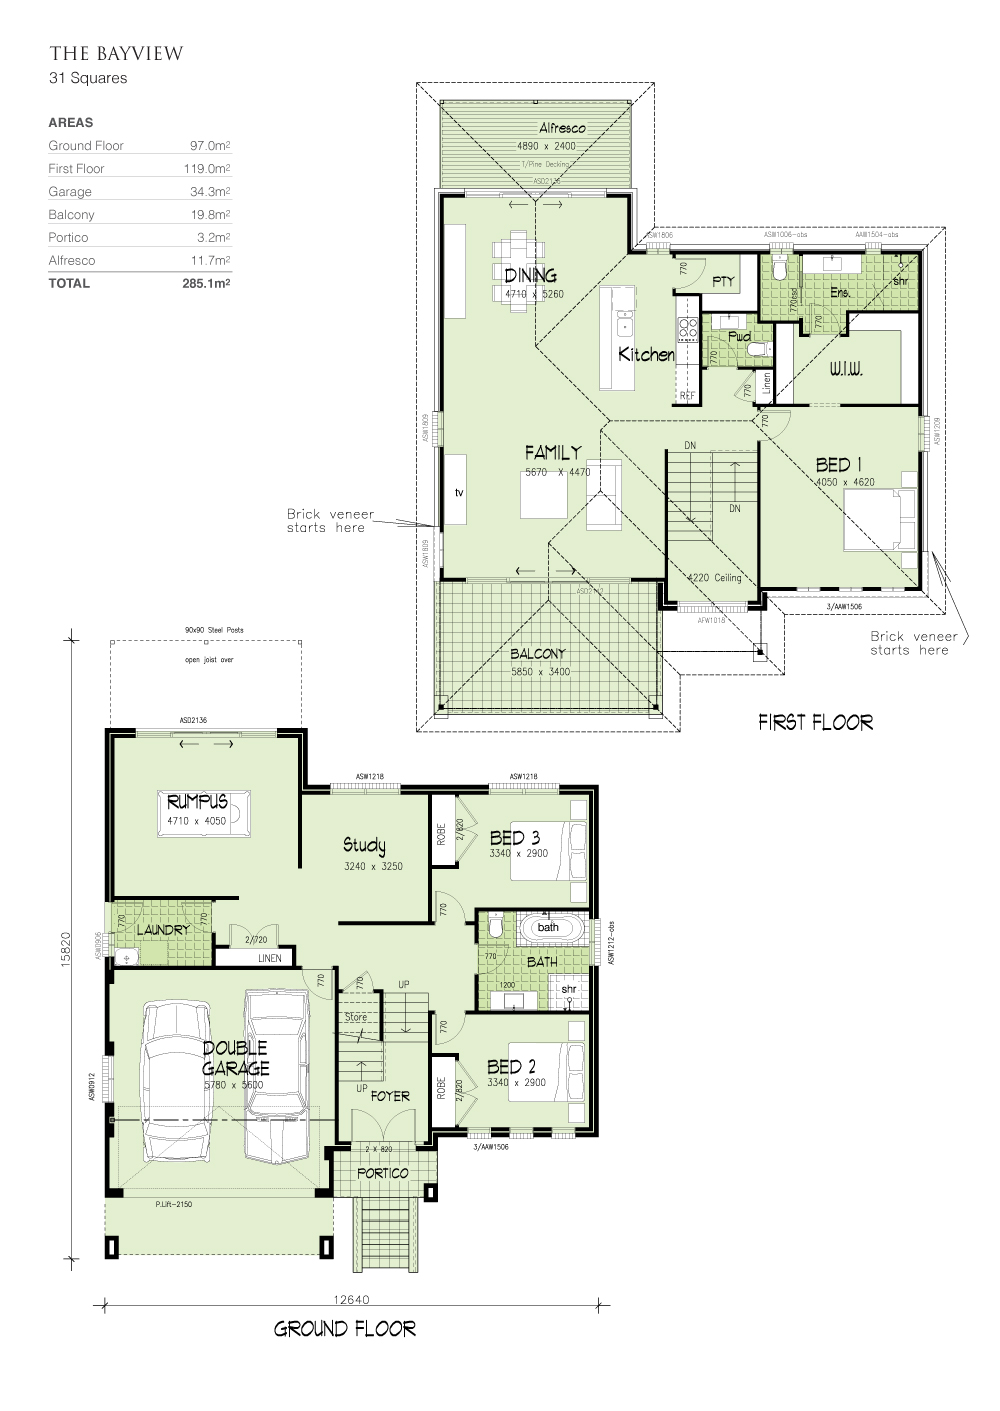 Bayview-31 Squares, Home Design, Tullipan Homes